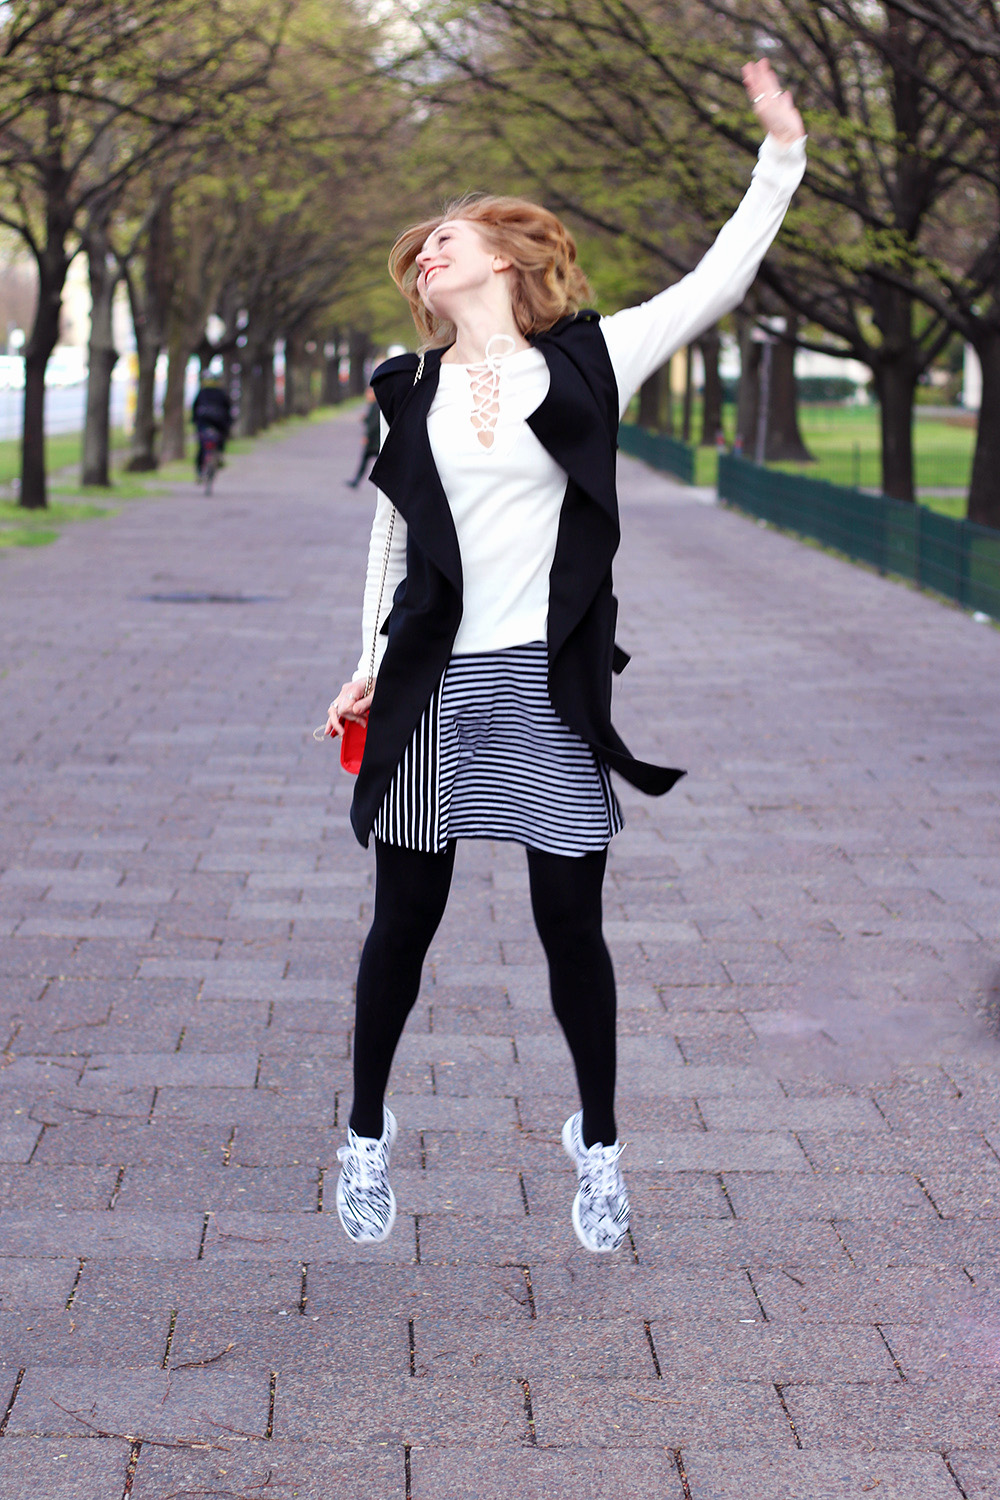 Look, Styling, Fröhlich, ZALON Styling Challenge, Mode-Experte, Frühling, Mode, Mustermix, Outfit, Streetstyle, blonde Haare, helle Haut, Influencer, Deutschland, Berlin, Streetstyle, Mode Blog, Advance Your Style, advanceyourstyle